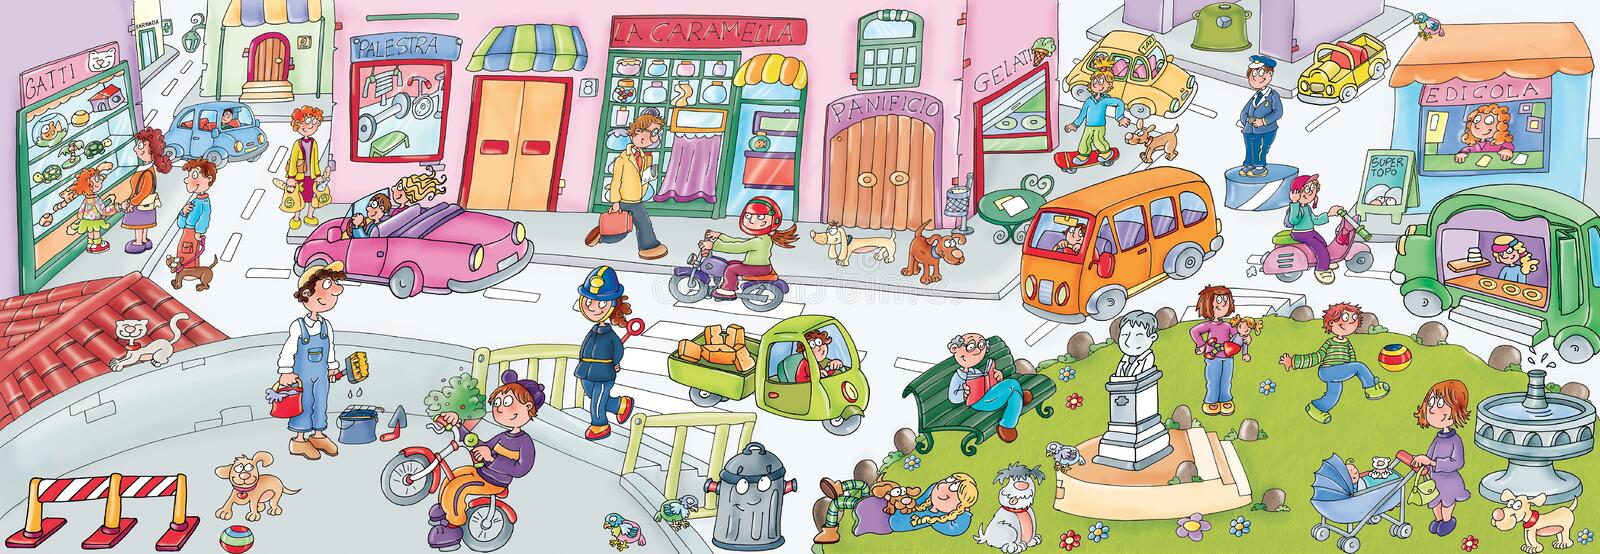 Cartoon urban street scene. Cartoon street full of characters and transport royalty free illustration